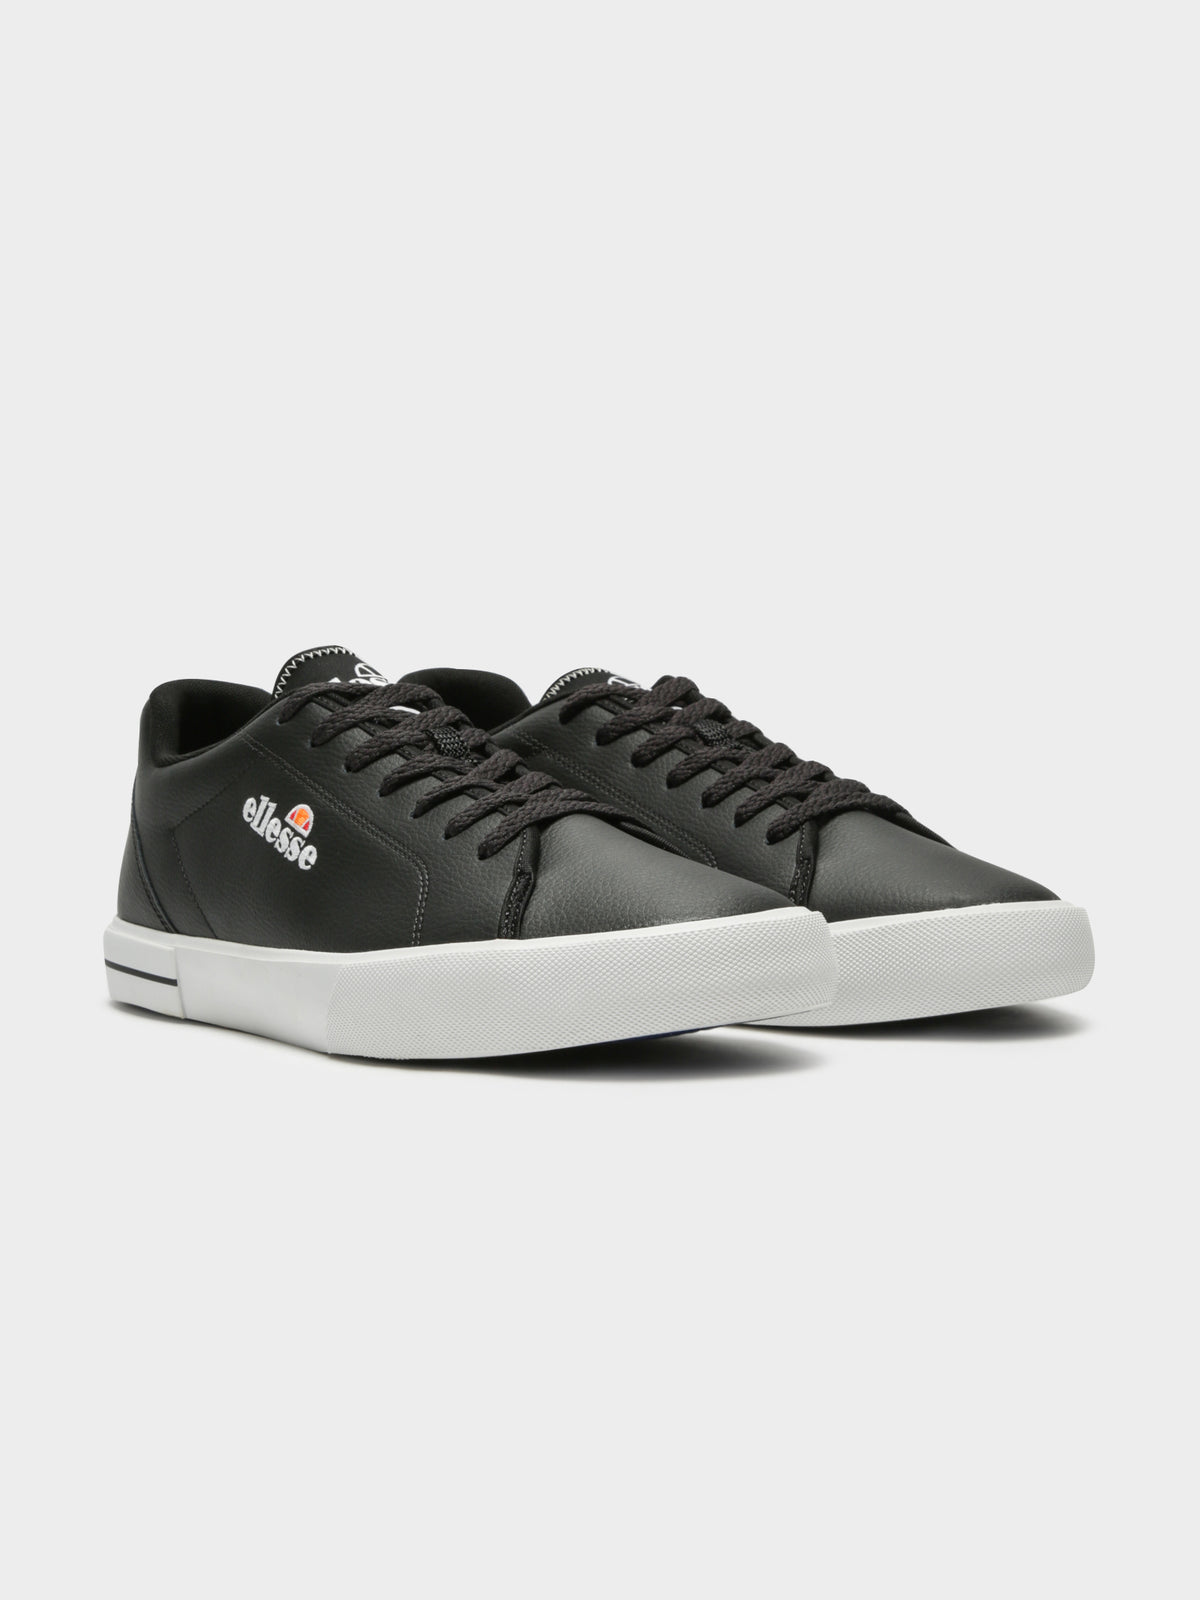 Mens Taggia Sneakers in Black